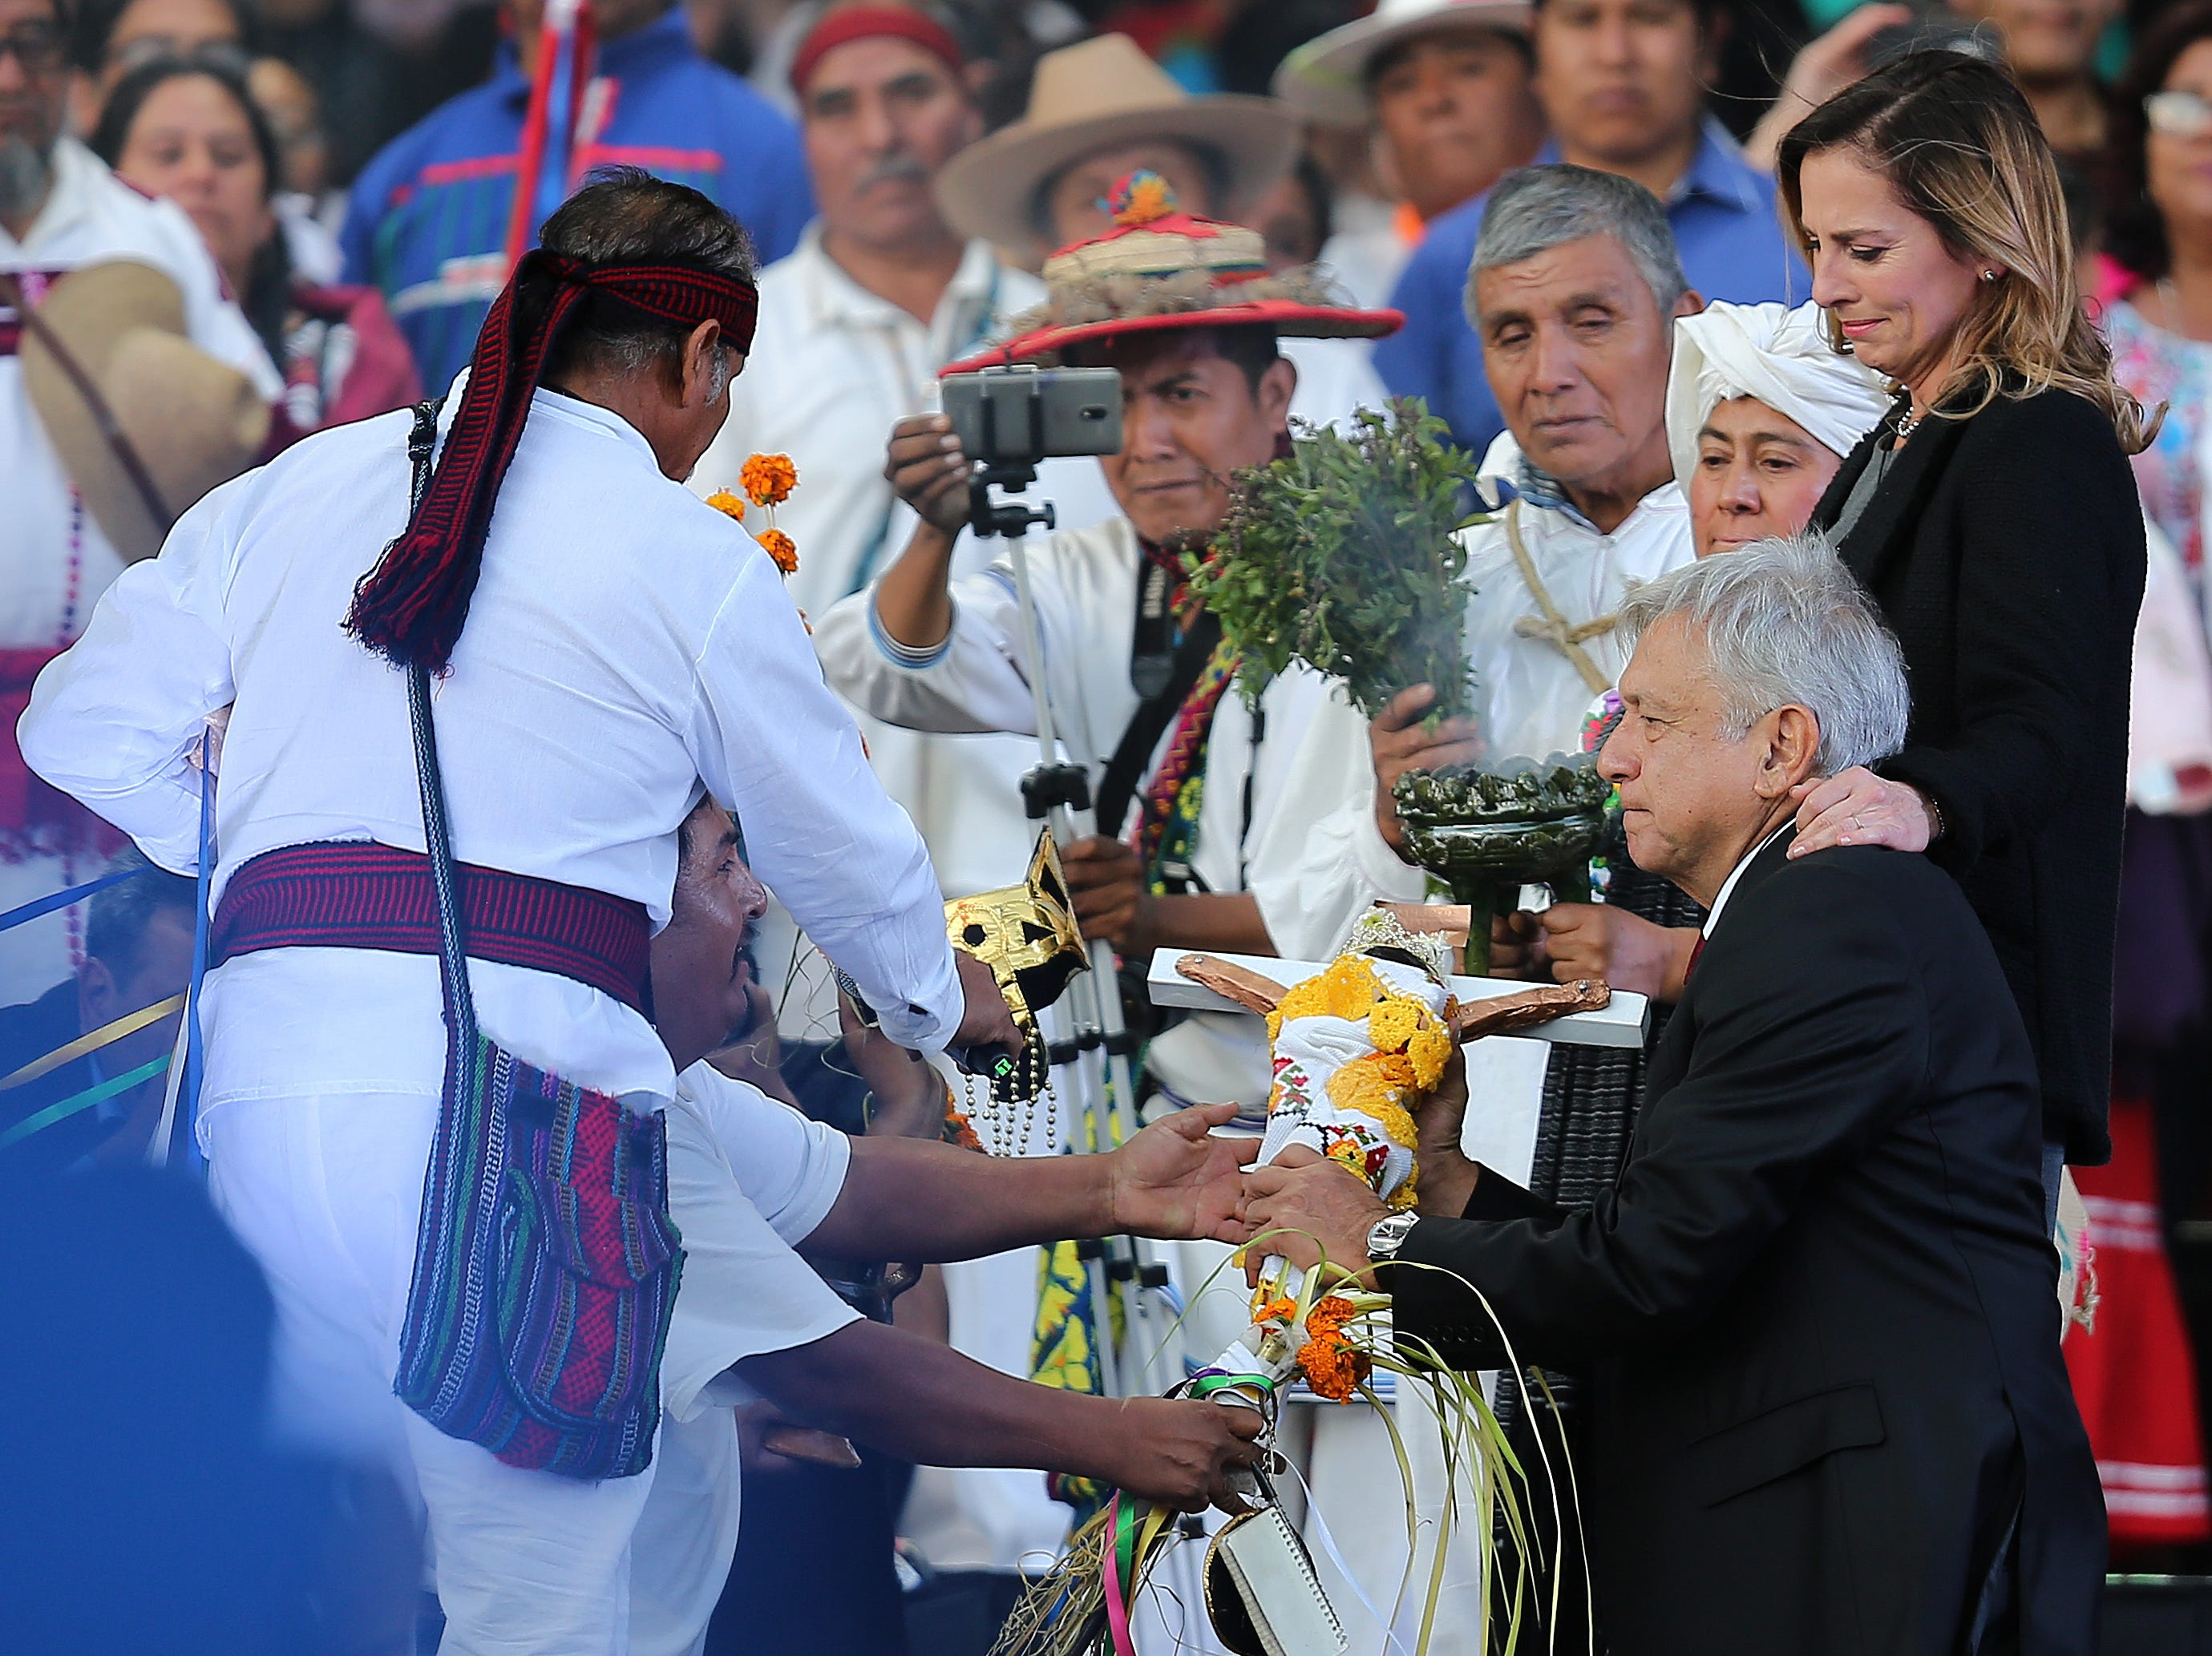 MEXICO CITY, MEXICO - DECEMBER 01: Andres Manuel Lopez Obrador President of Mexico takes part in an indigenpus ceremony during the events of the Presidential Investiture as part of the 65th Mexico Presidential Inauguration at Zocalo on December 01, 2018 in Mexico City, Mexico. (Photo by Manuel Velasquez/Getty Images)